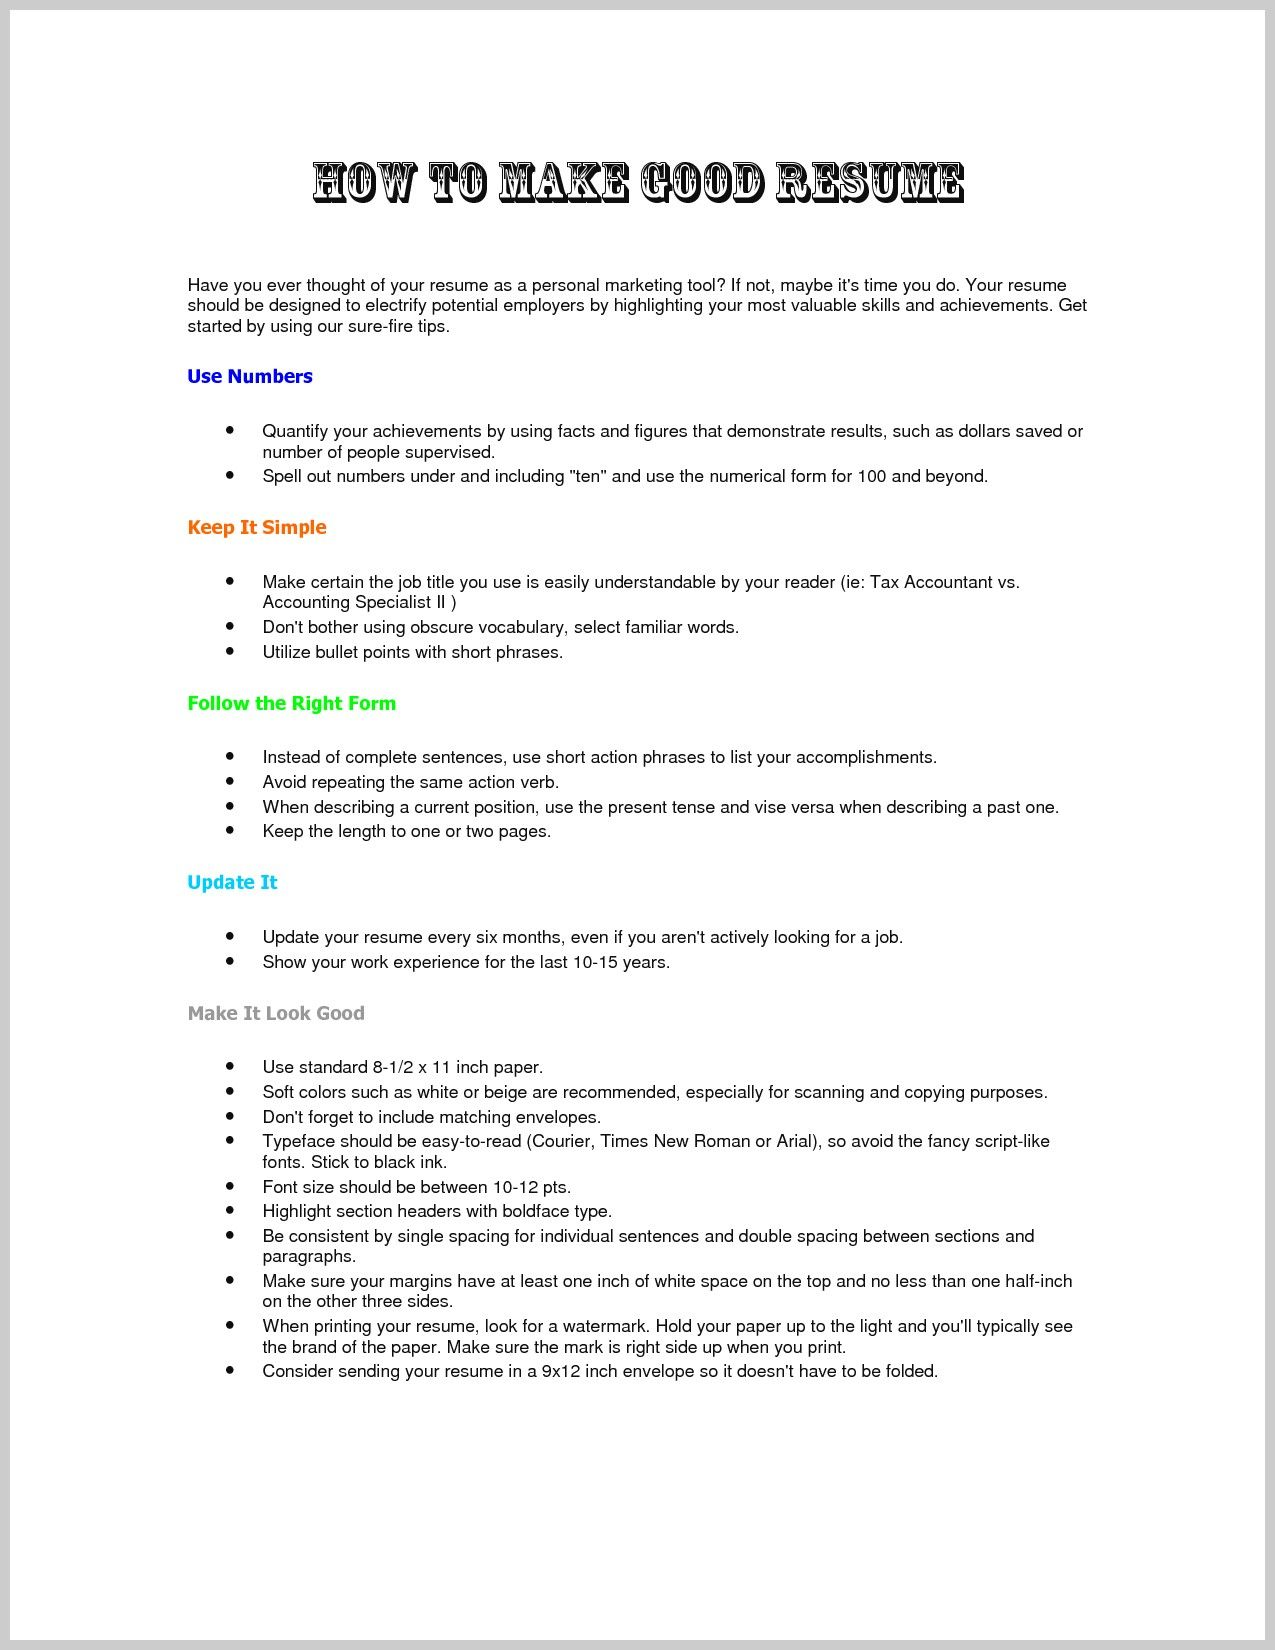 percent free resume templates template examples to make look good best skill words for Resume Make Resume Look Good